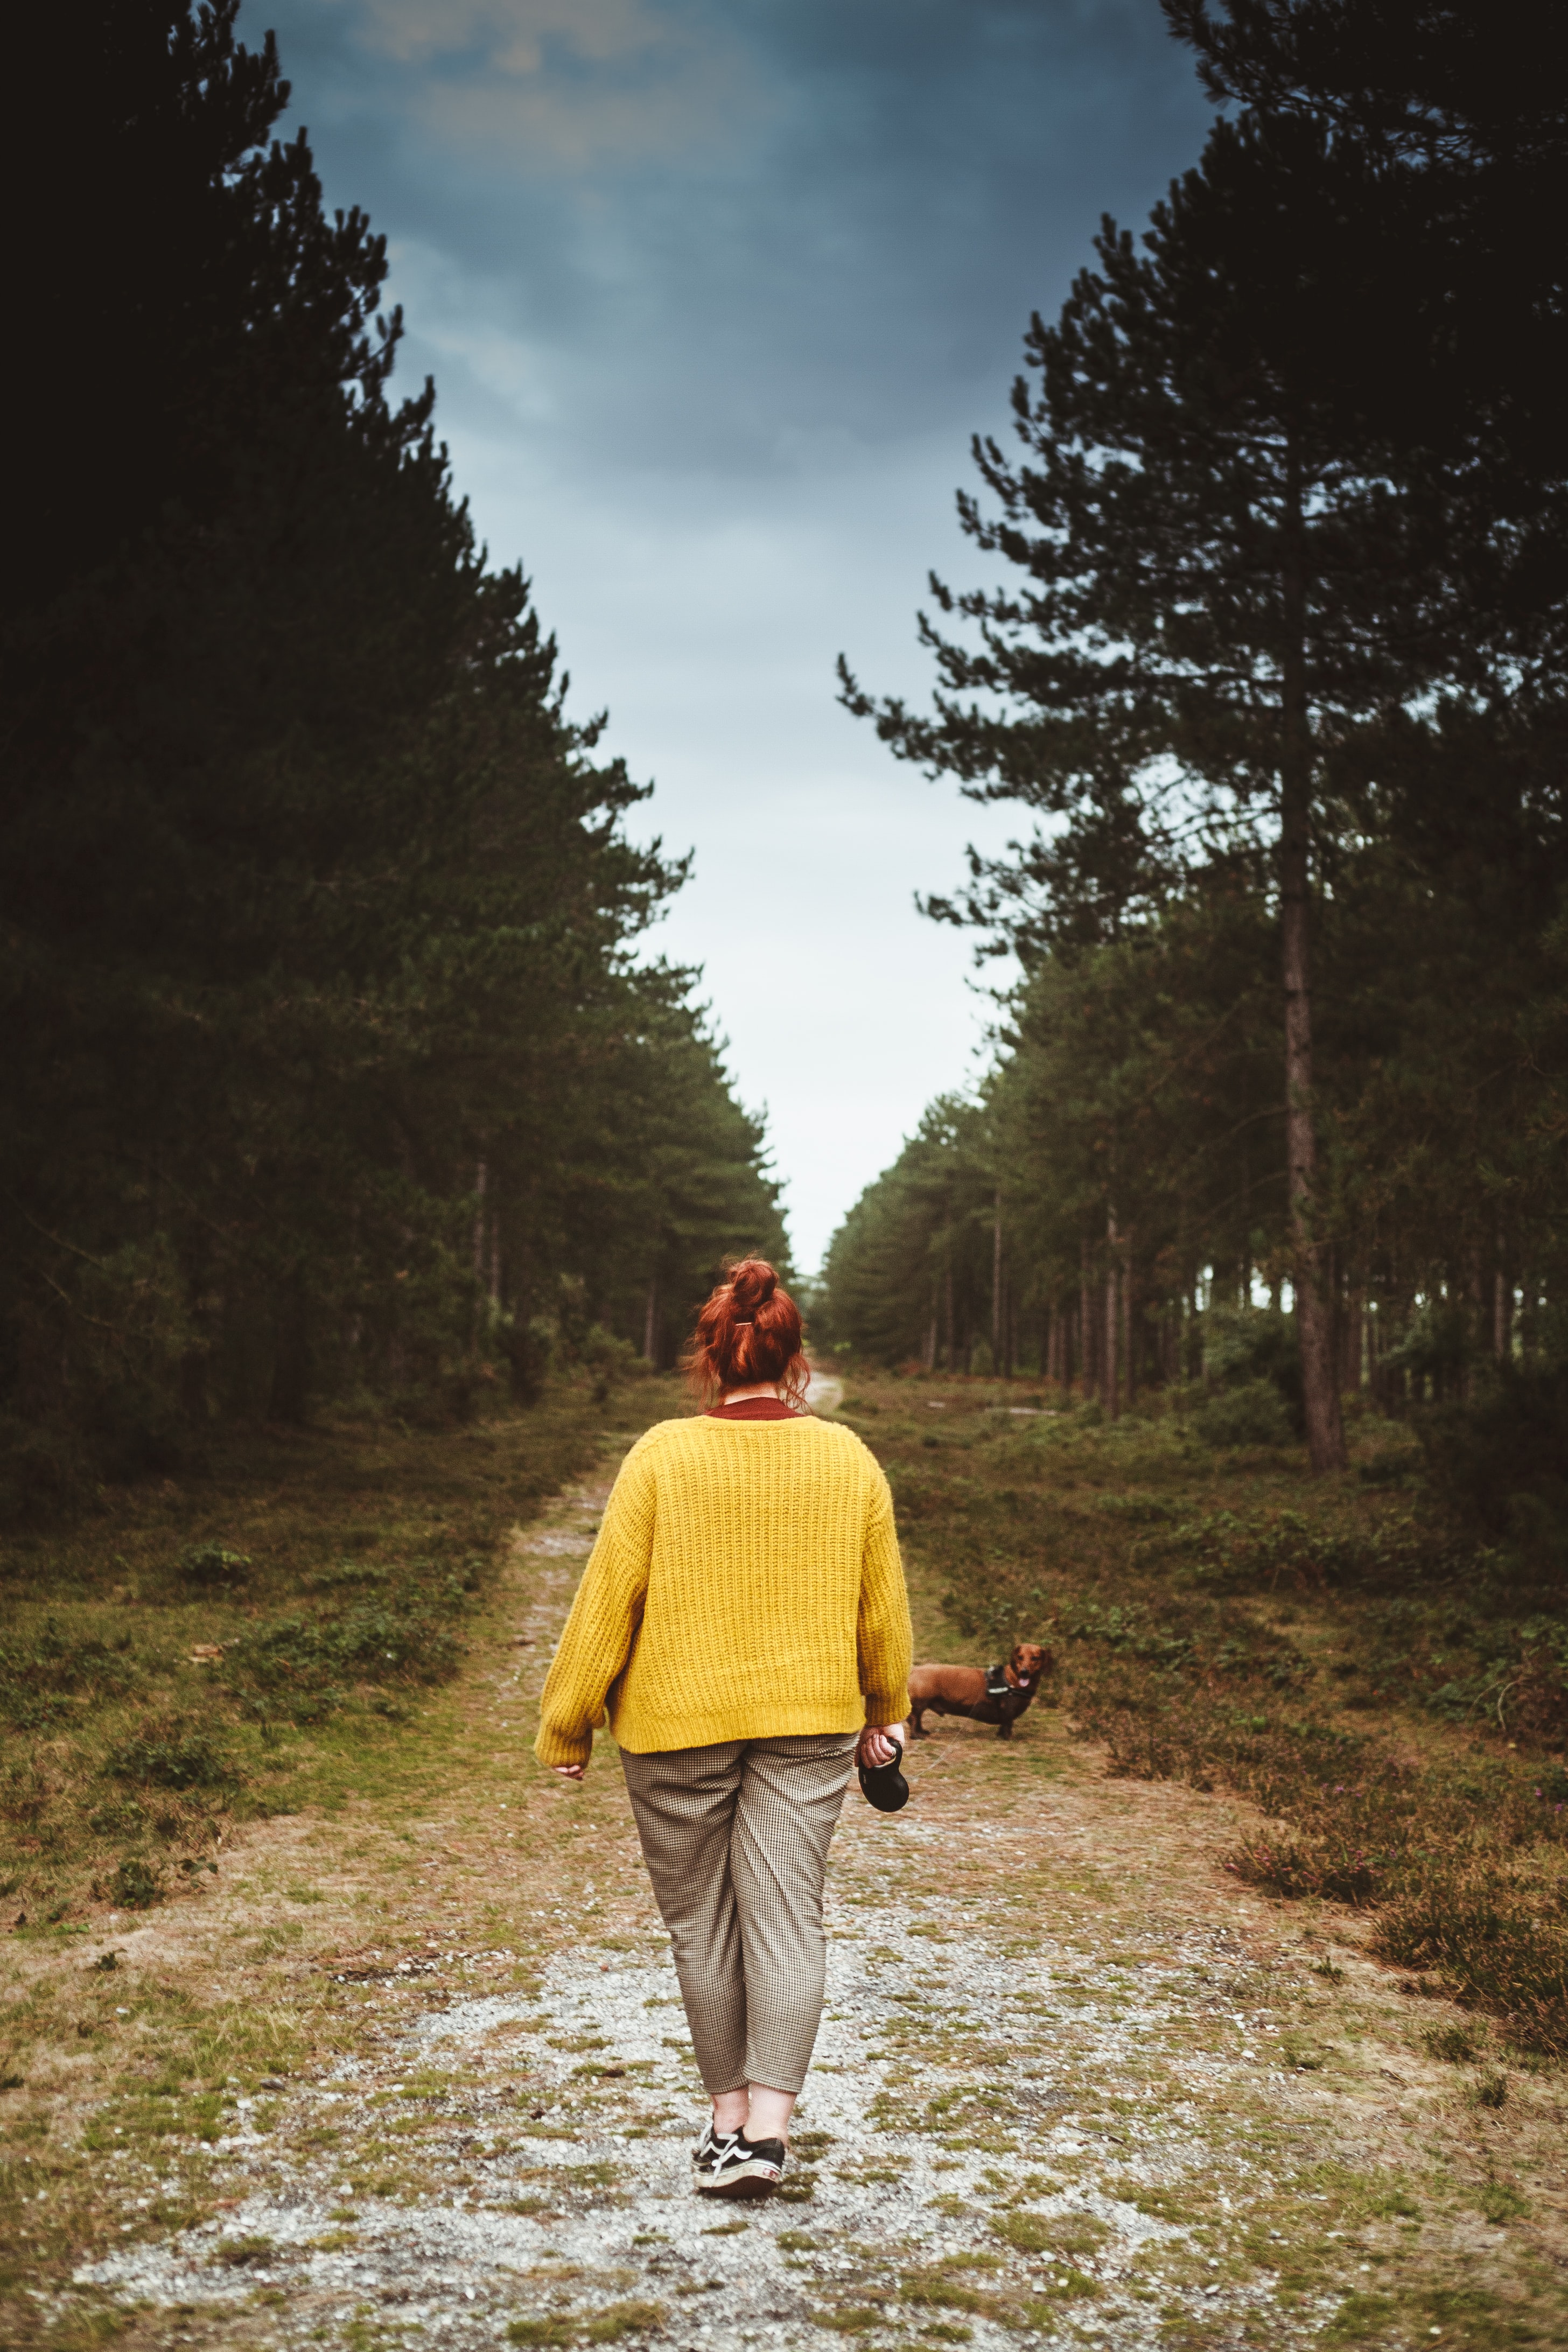 woman standing near adult brown dachshund on road at daytime